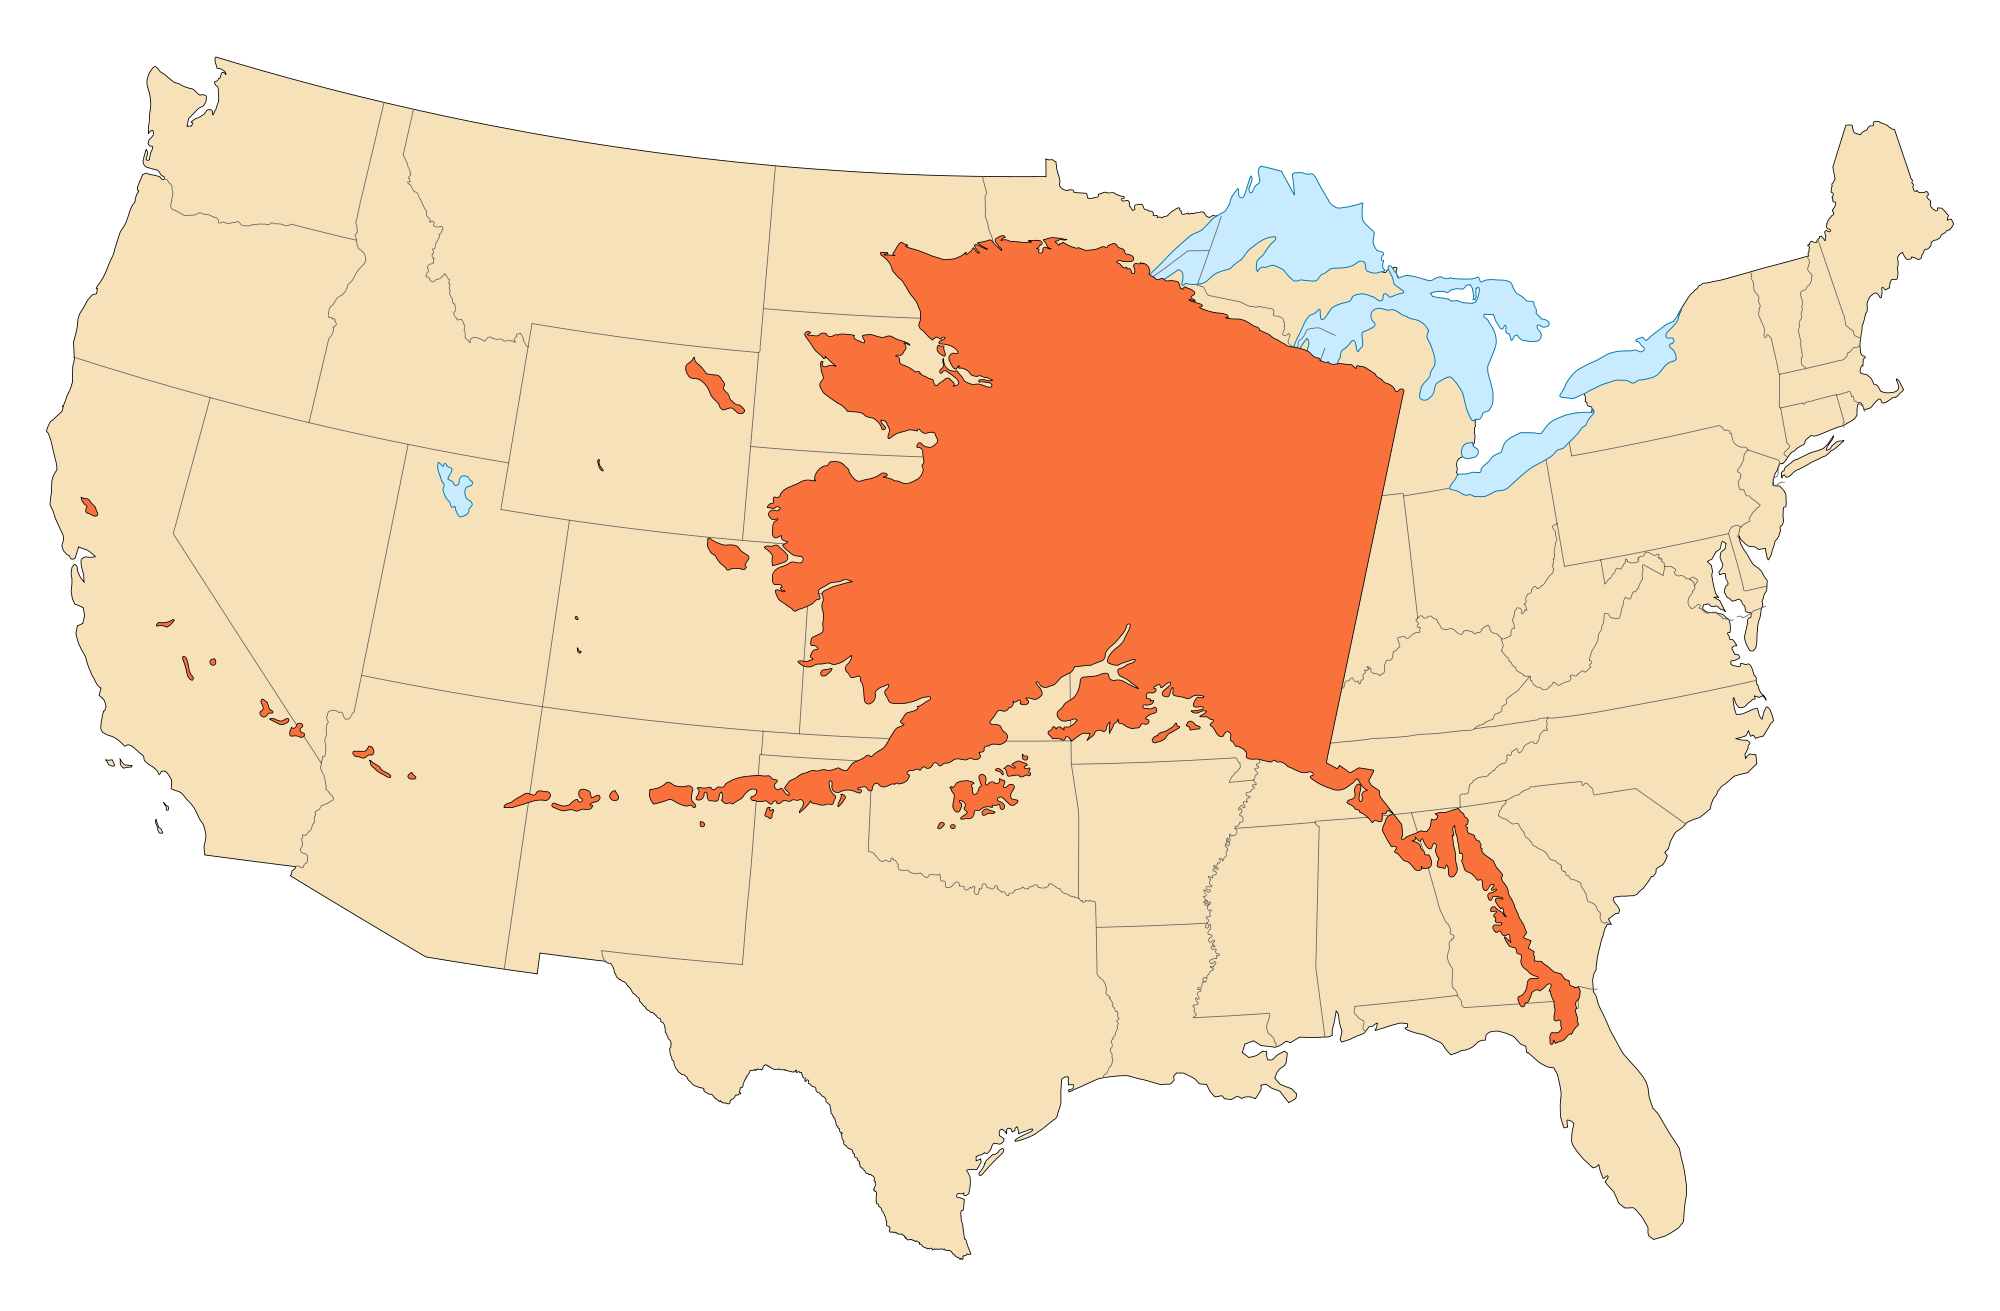 Alaska Area Compared To Conterminous Us